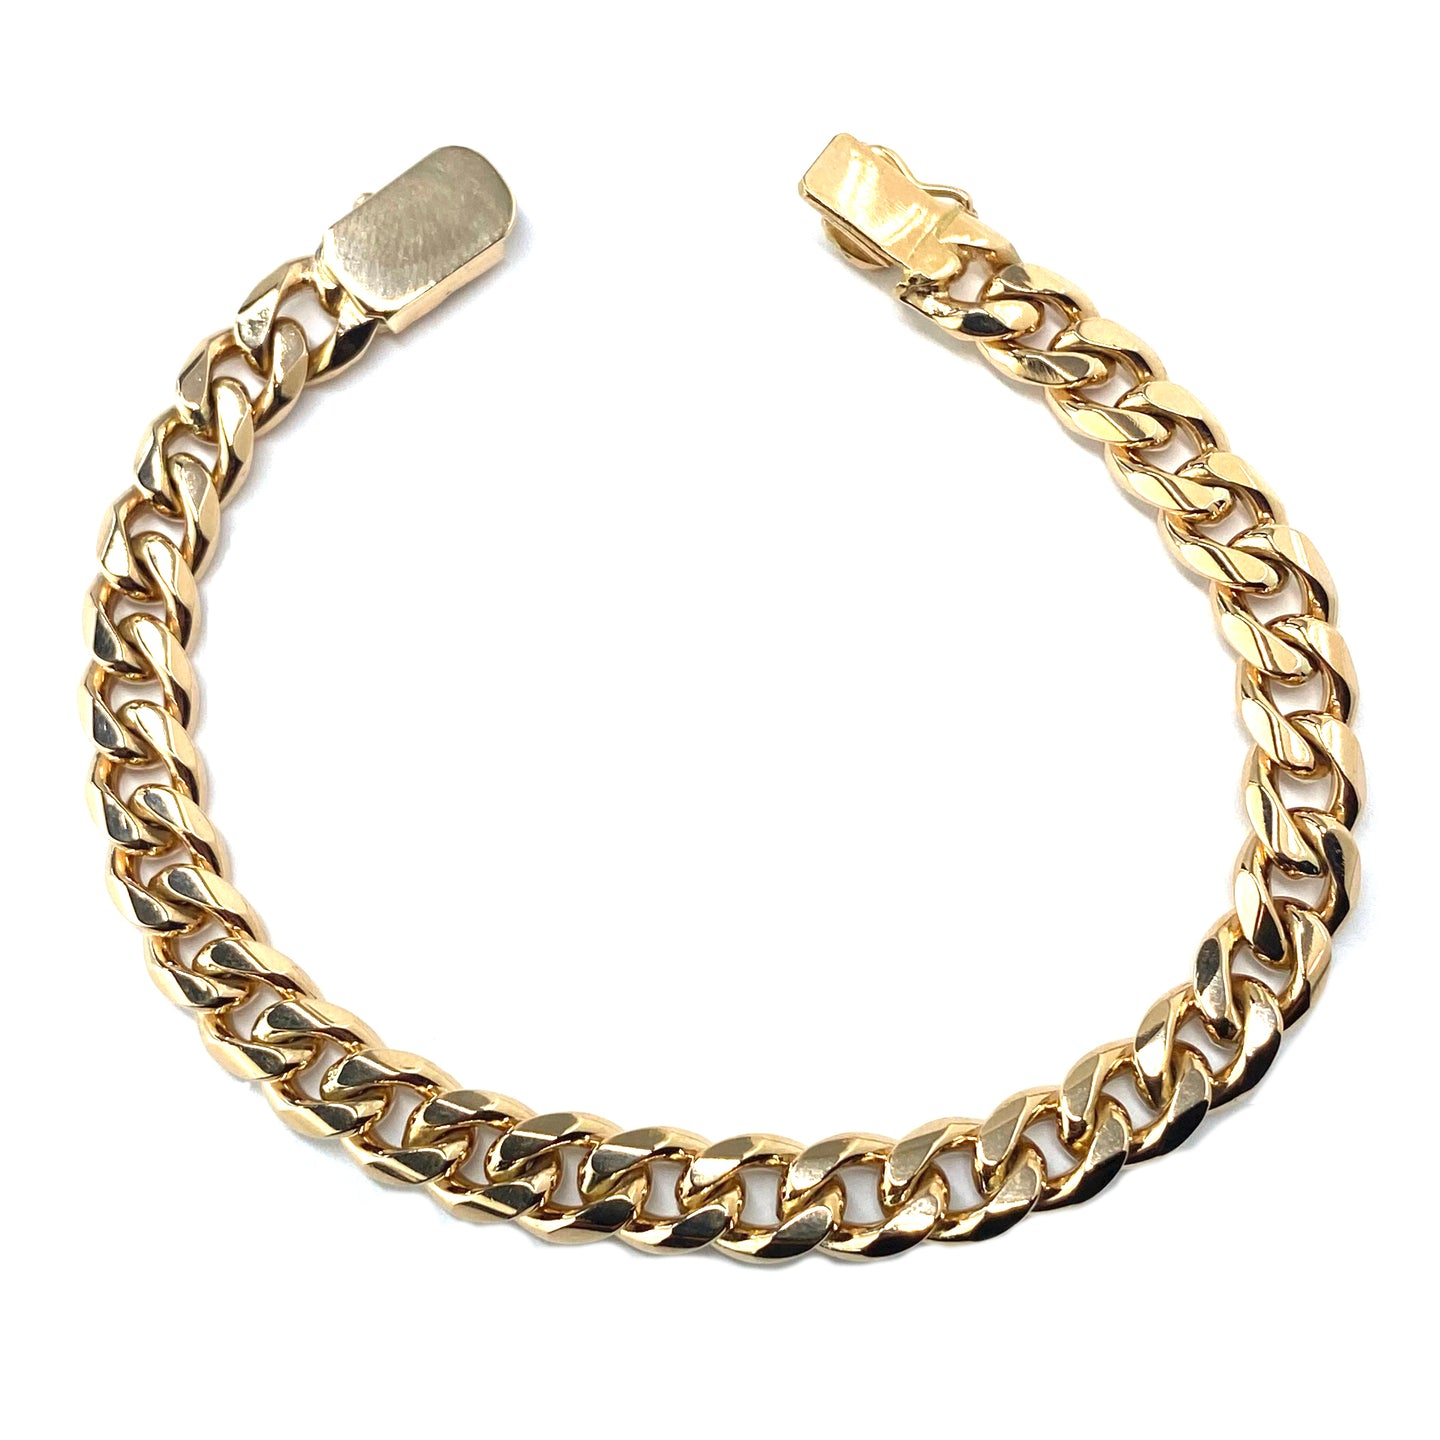 Oval Rose Gold Link Bracelet in 18k